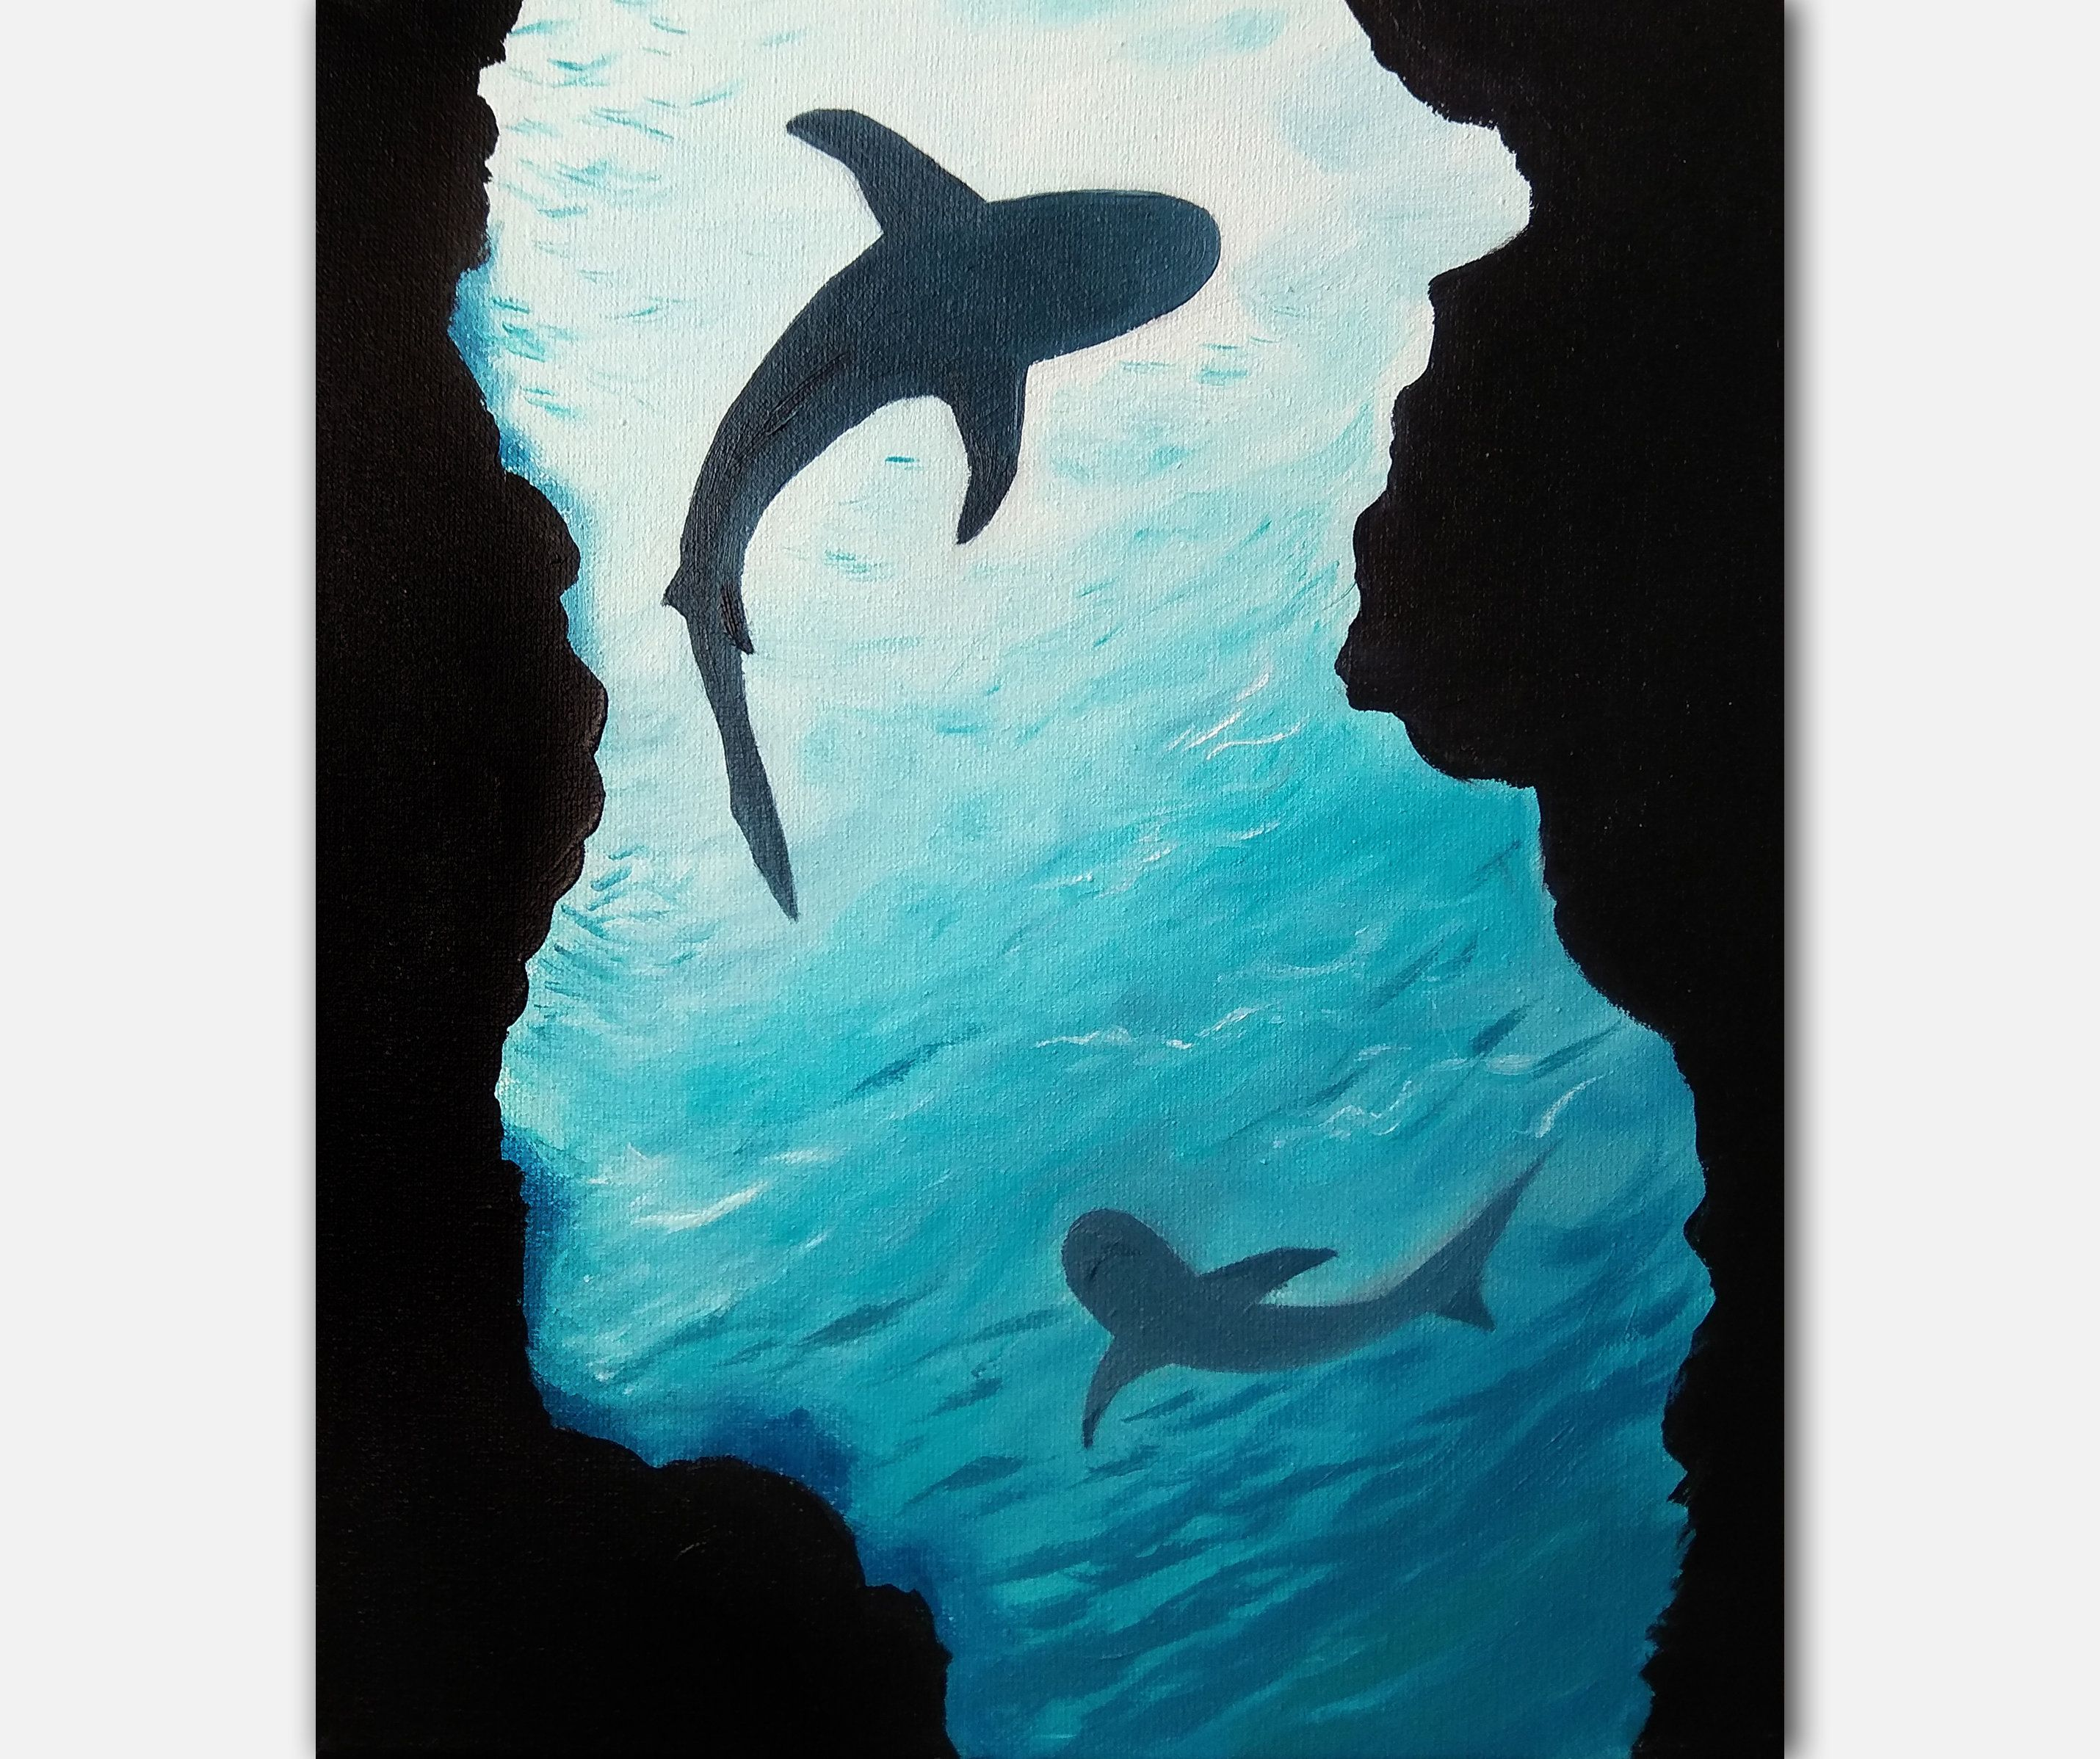 Photo of Shark Painting Minimal Decor On Canvas Blue Sea White Sharks View Under the Water Small Blue Picture Oil Artwork Cyan Wall Art Small Decor